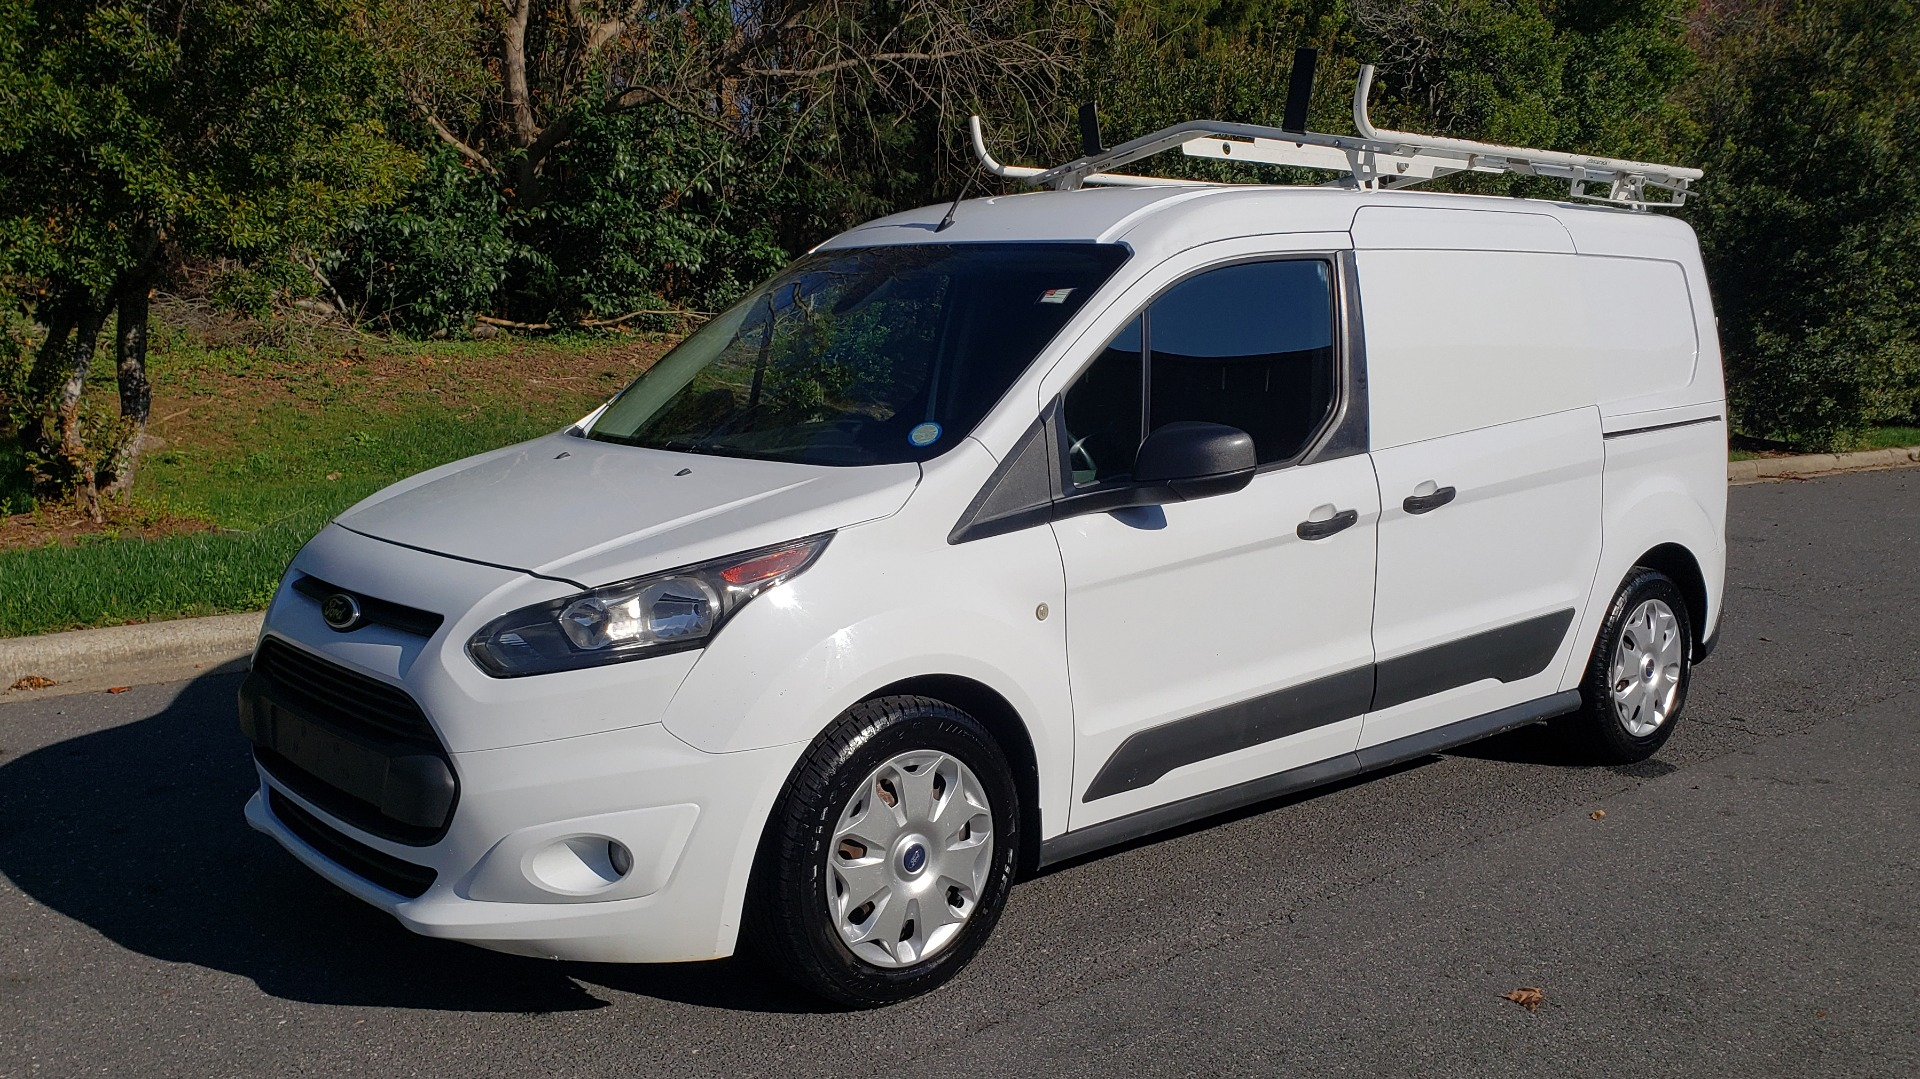 Used 2015 Ford TRANSIT CONNECT XLT CARGO VAN / 121-IN WB / 2.5L 4-CYL / AUTO / REARVIEW / WORK VAN for sale $12,995 at Formula Imports in Charlotte NC 28227 1